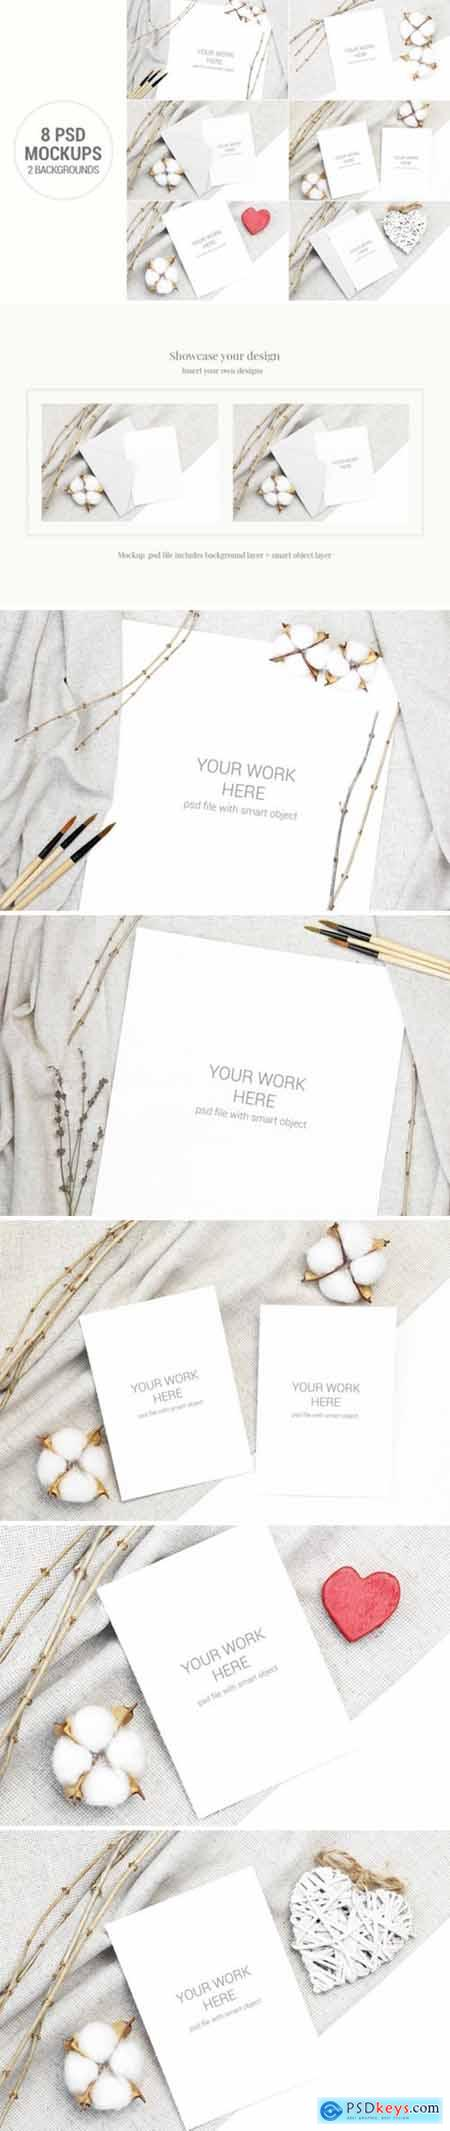 Card Mockup Set with Cotton and Branches 2427955